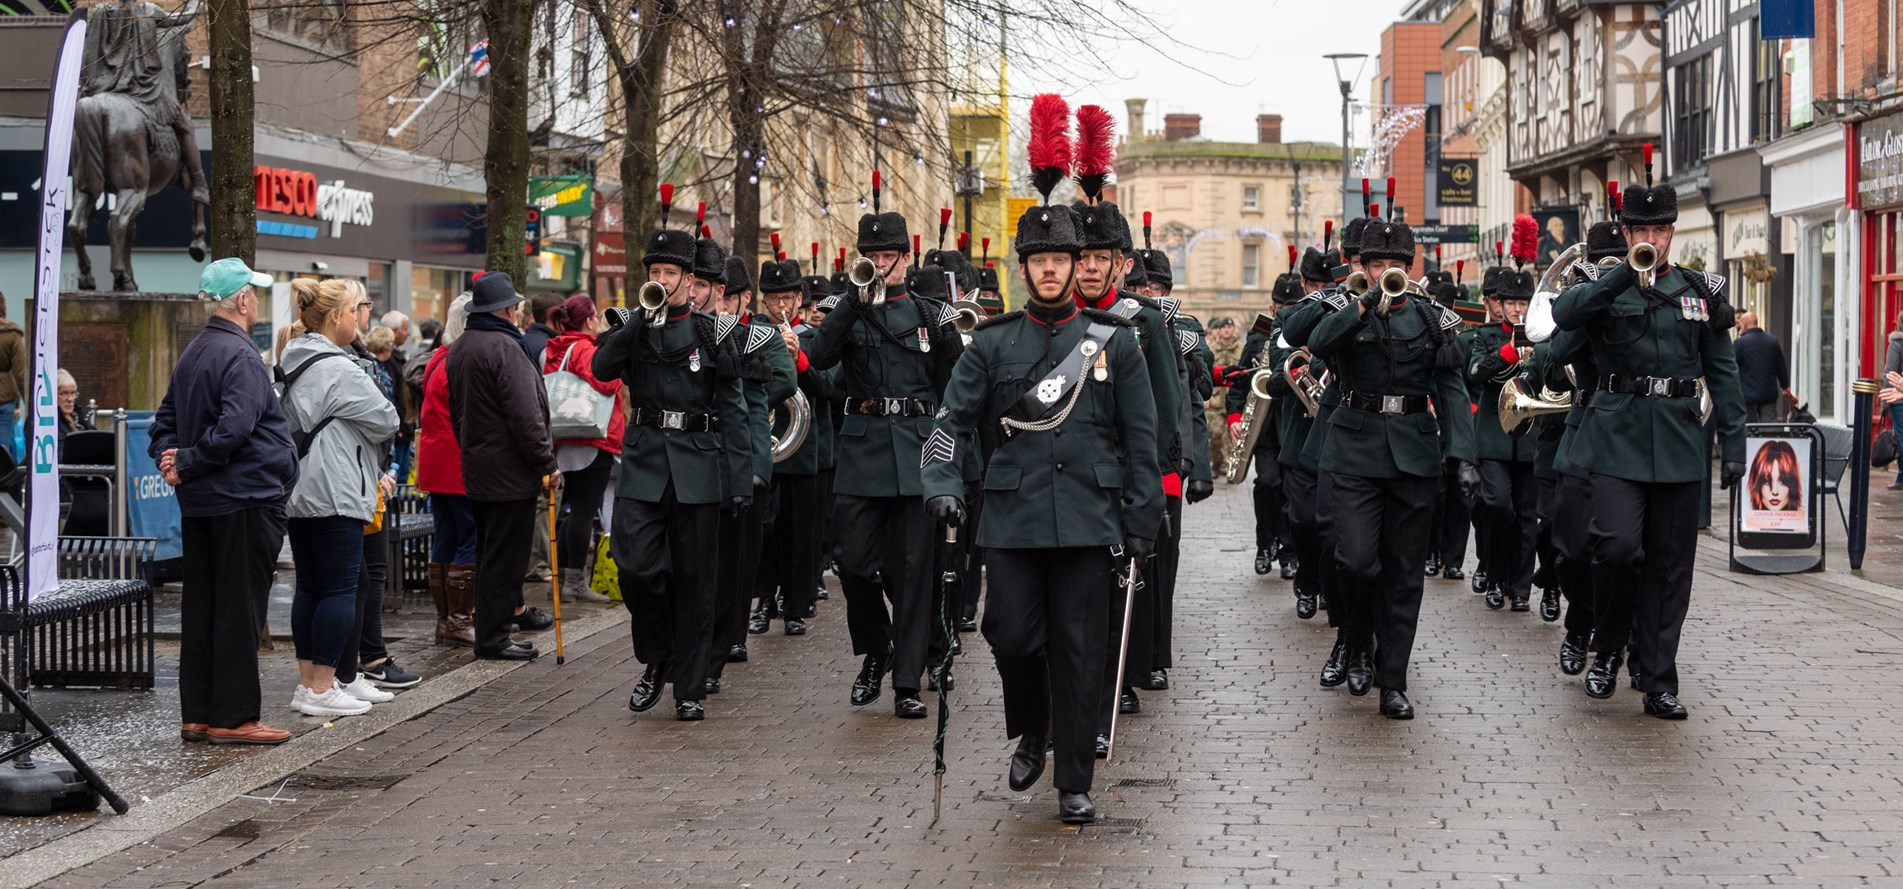 ARMYHQCPL4-2019-003-1Rifles Home Coming Parade 425.JPG